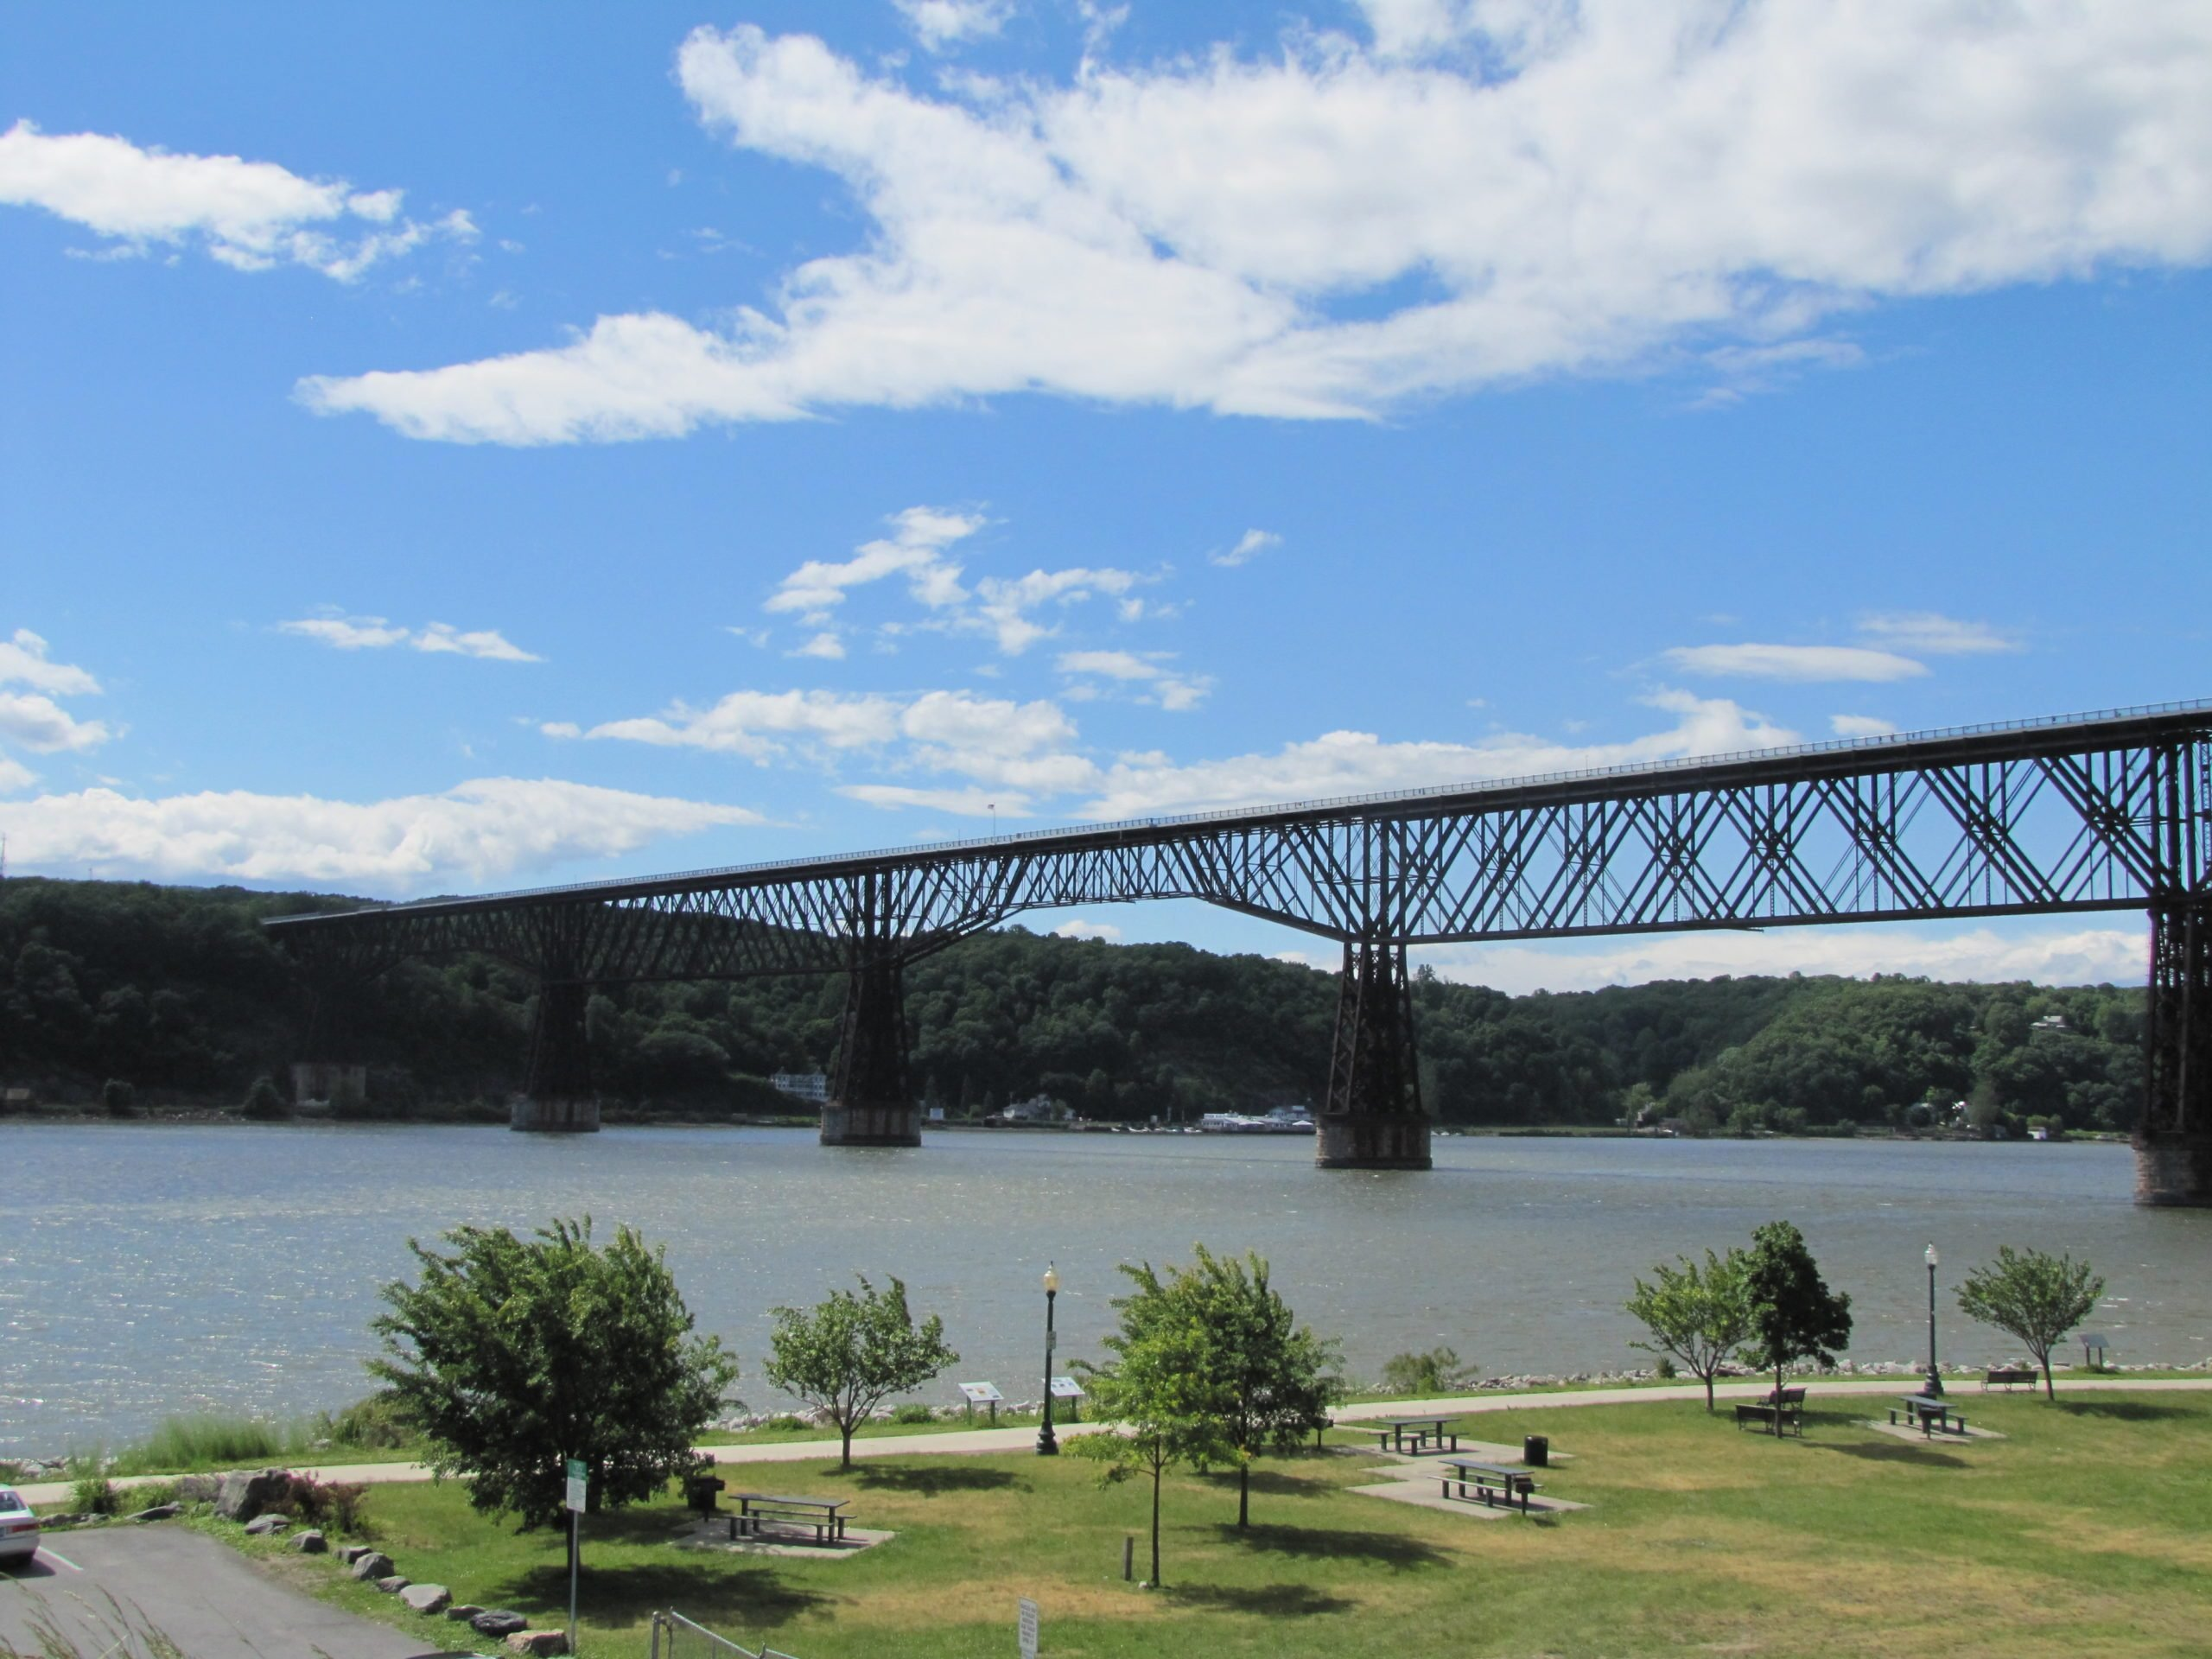 Walkway over the Hudson, Poughkeepsie and Highland, New York